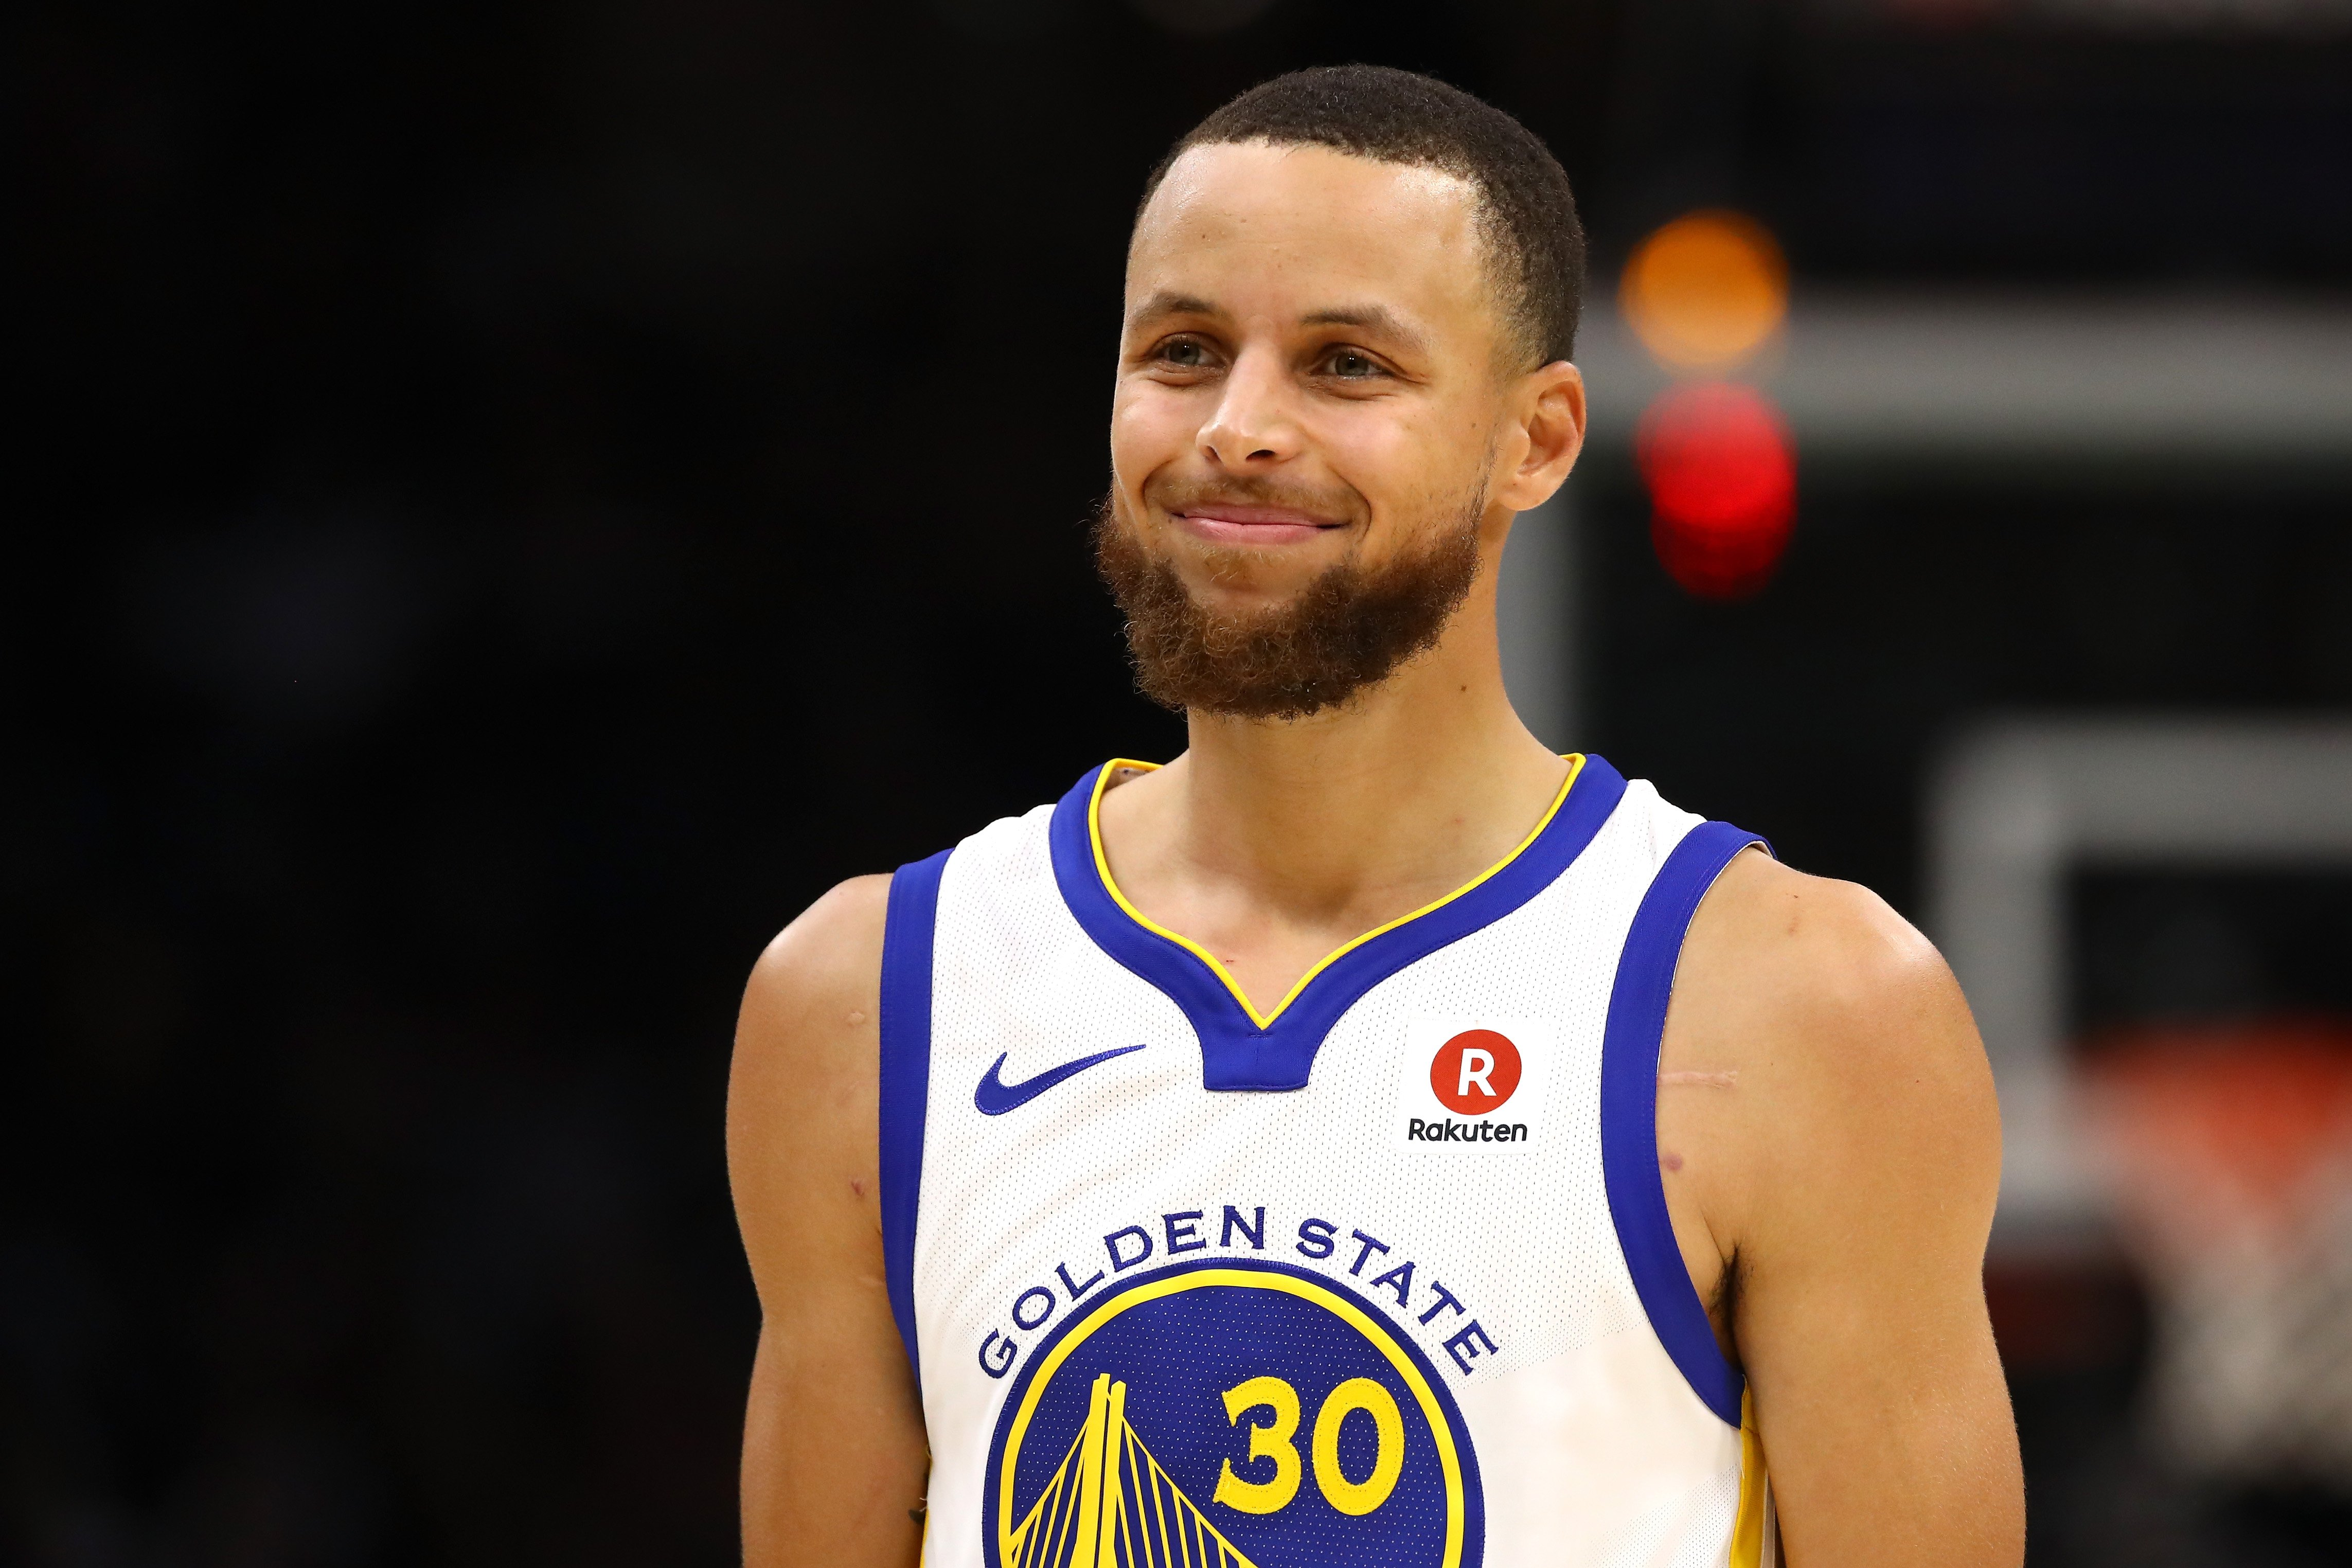 Stephen Curry during a game against the Cleveland Cavaliers at the 2018 NBA Finals on June 8, 2018 in Cleveland, Ohio. | Source: Getty Images